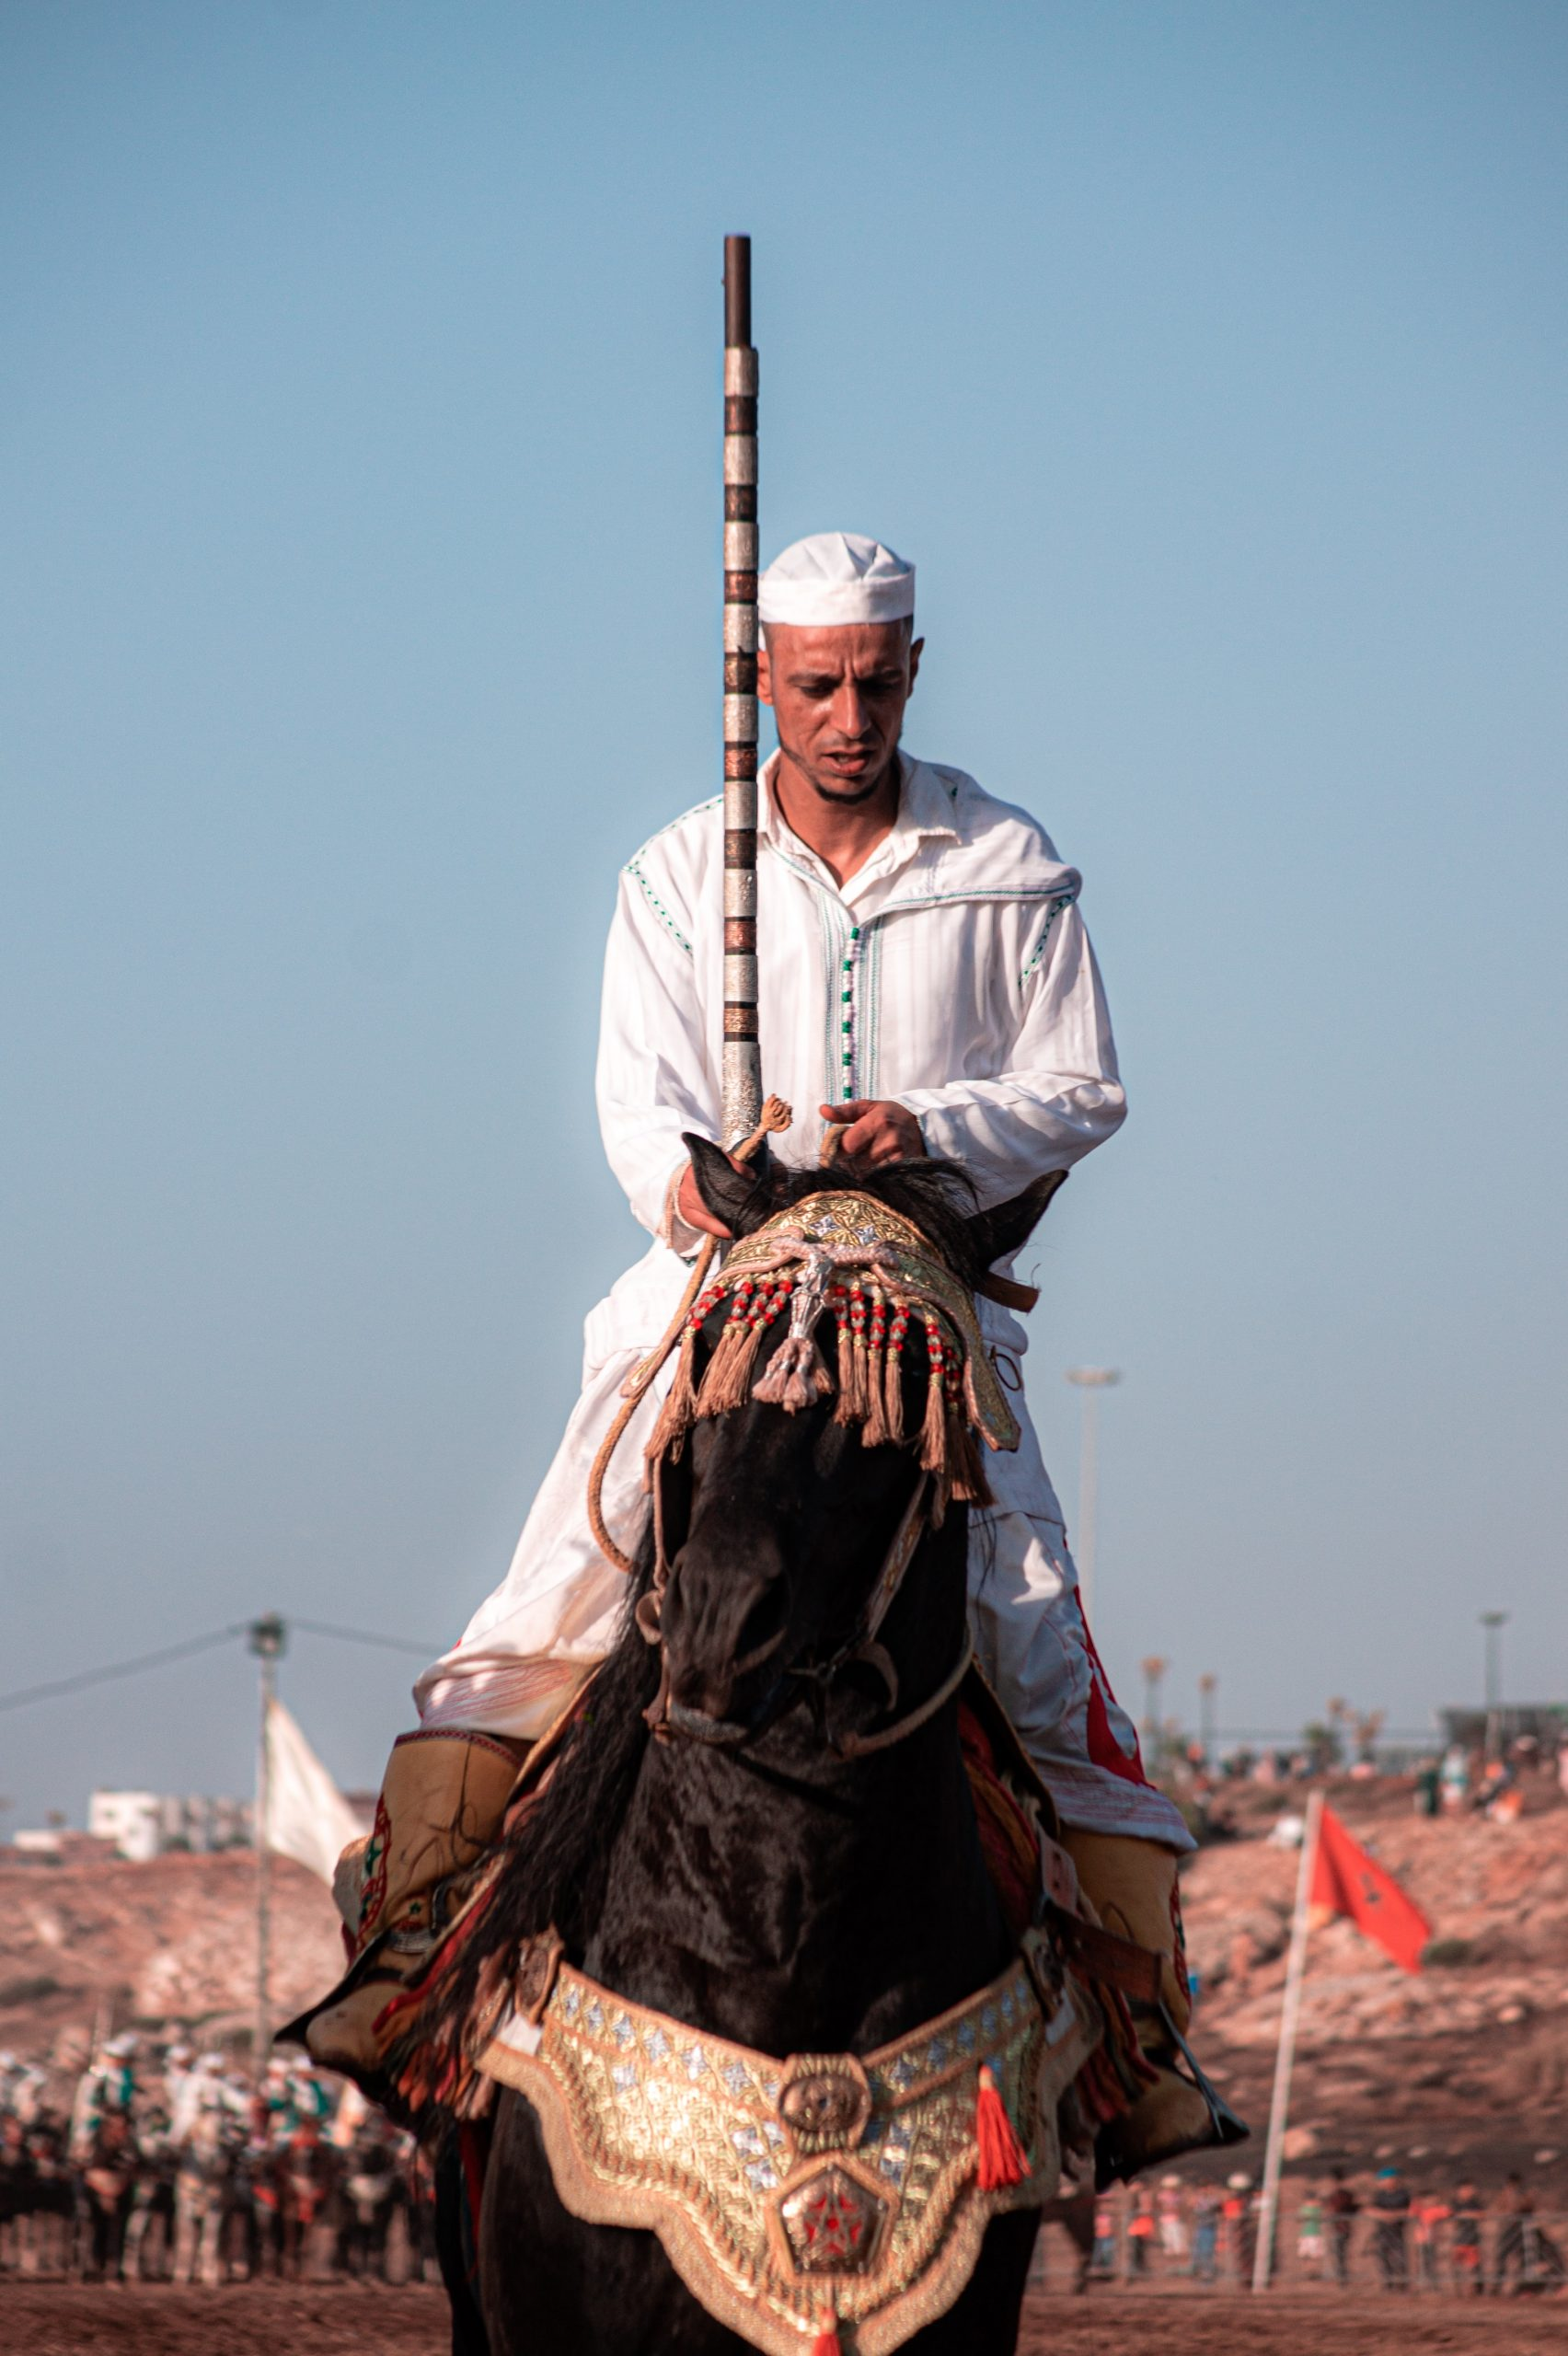 gallery image for Fantasia Traditional Show Marrakech